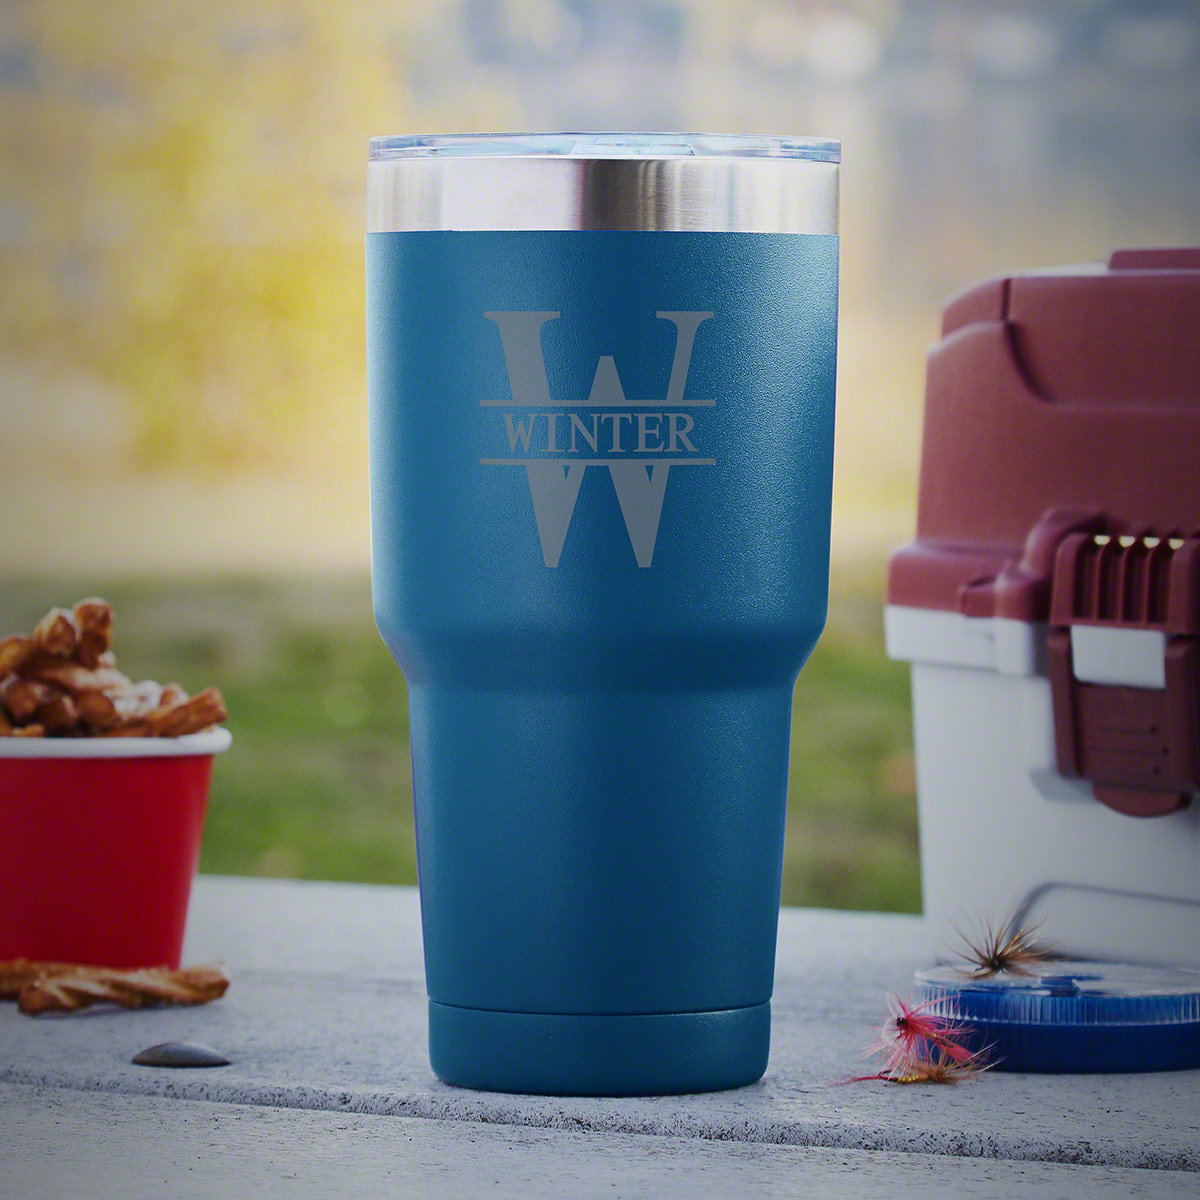 Whatever drew you to our Oakmont double-wall personalized travel mug, be it the color or design, you've landed on an amazing gift. Made from strapping 18/8 stainless steel, these Yeti-style tumblers are ready for action. The double-wall, vacuum insulated #mug